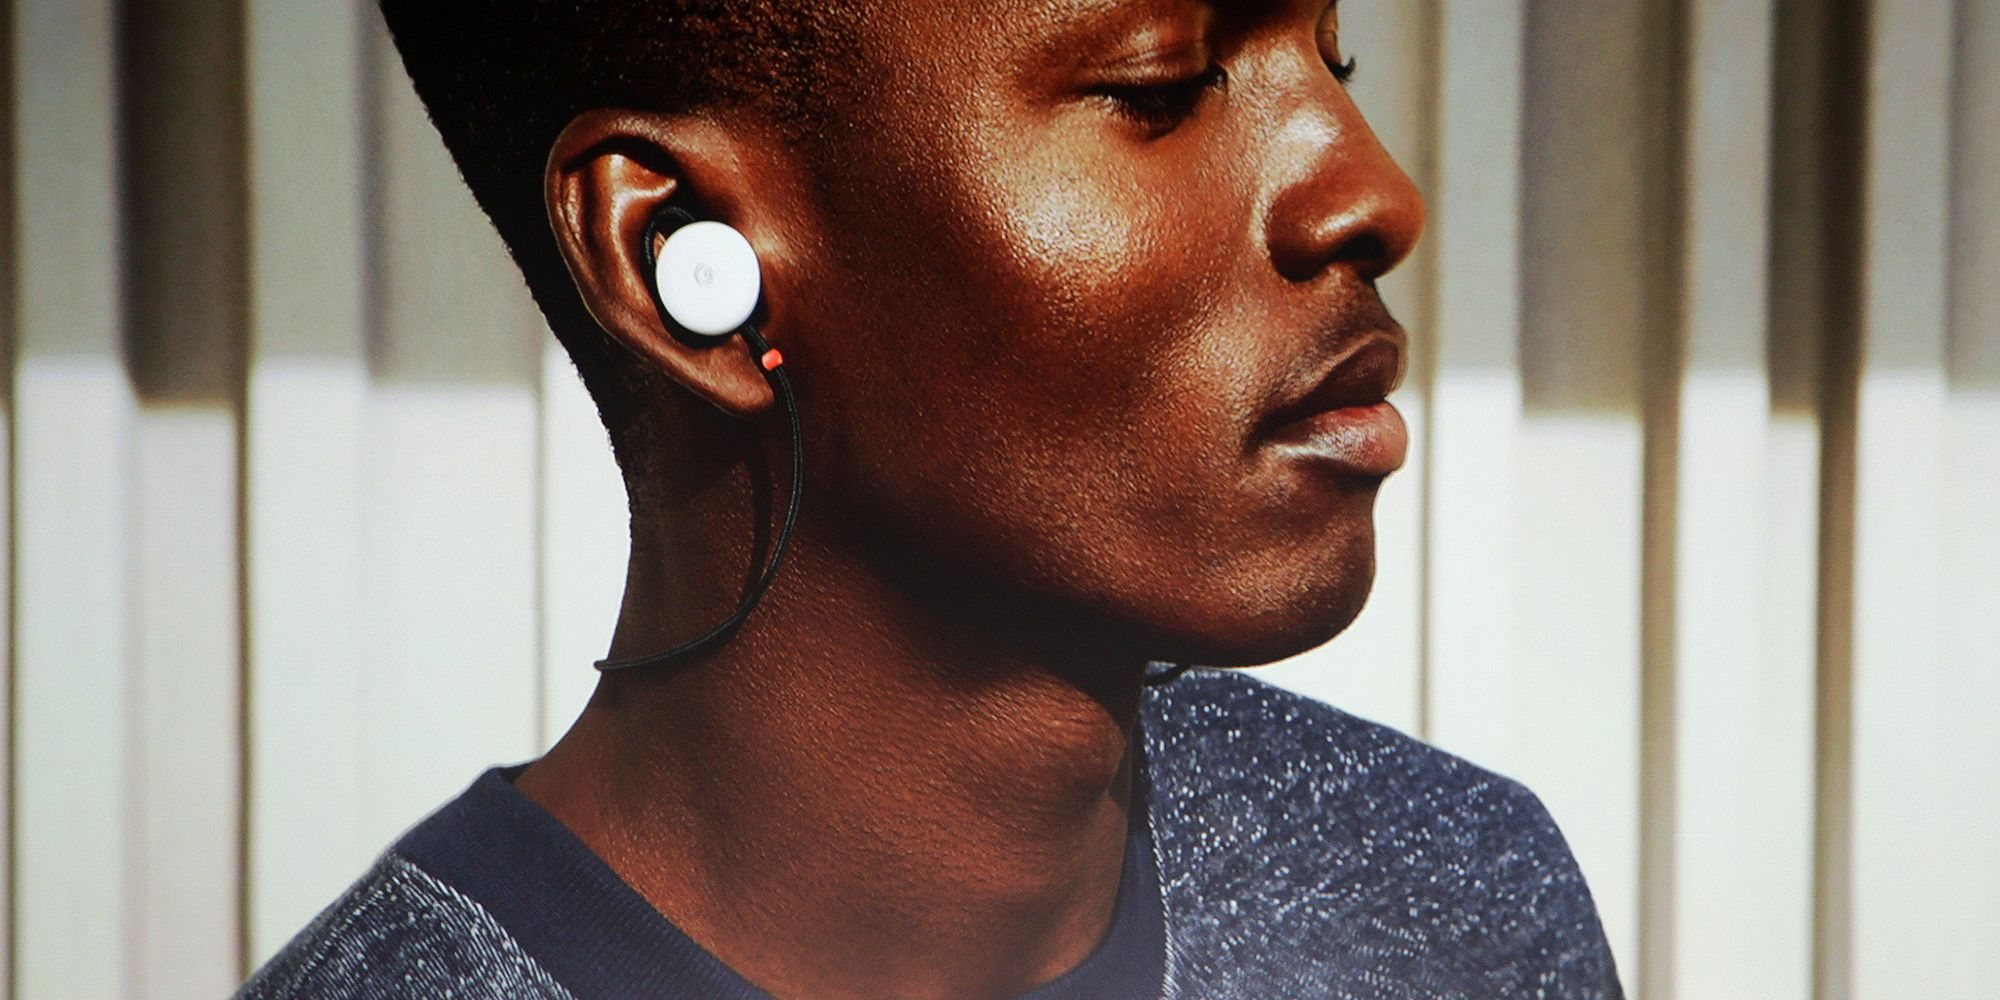 Google's New Earbuds Can Instantly Translate 40 Different Languages